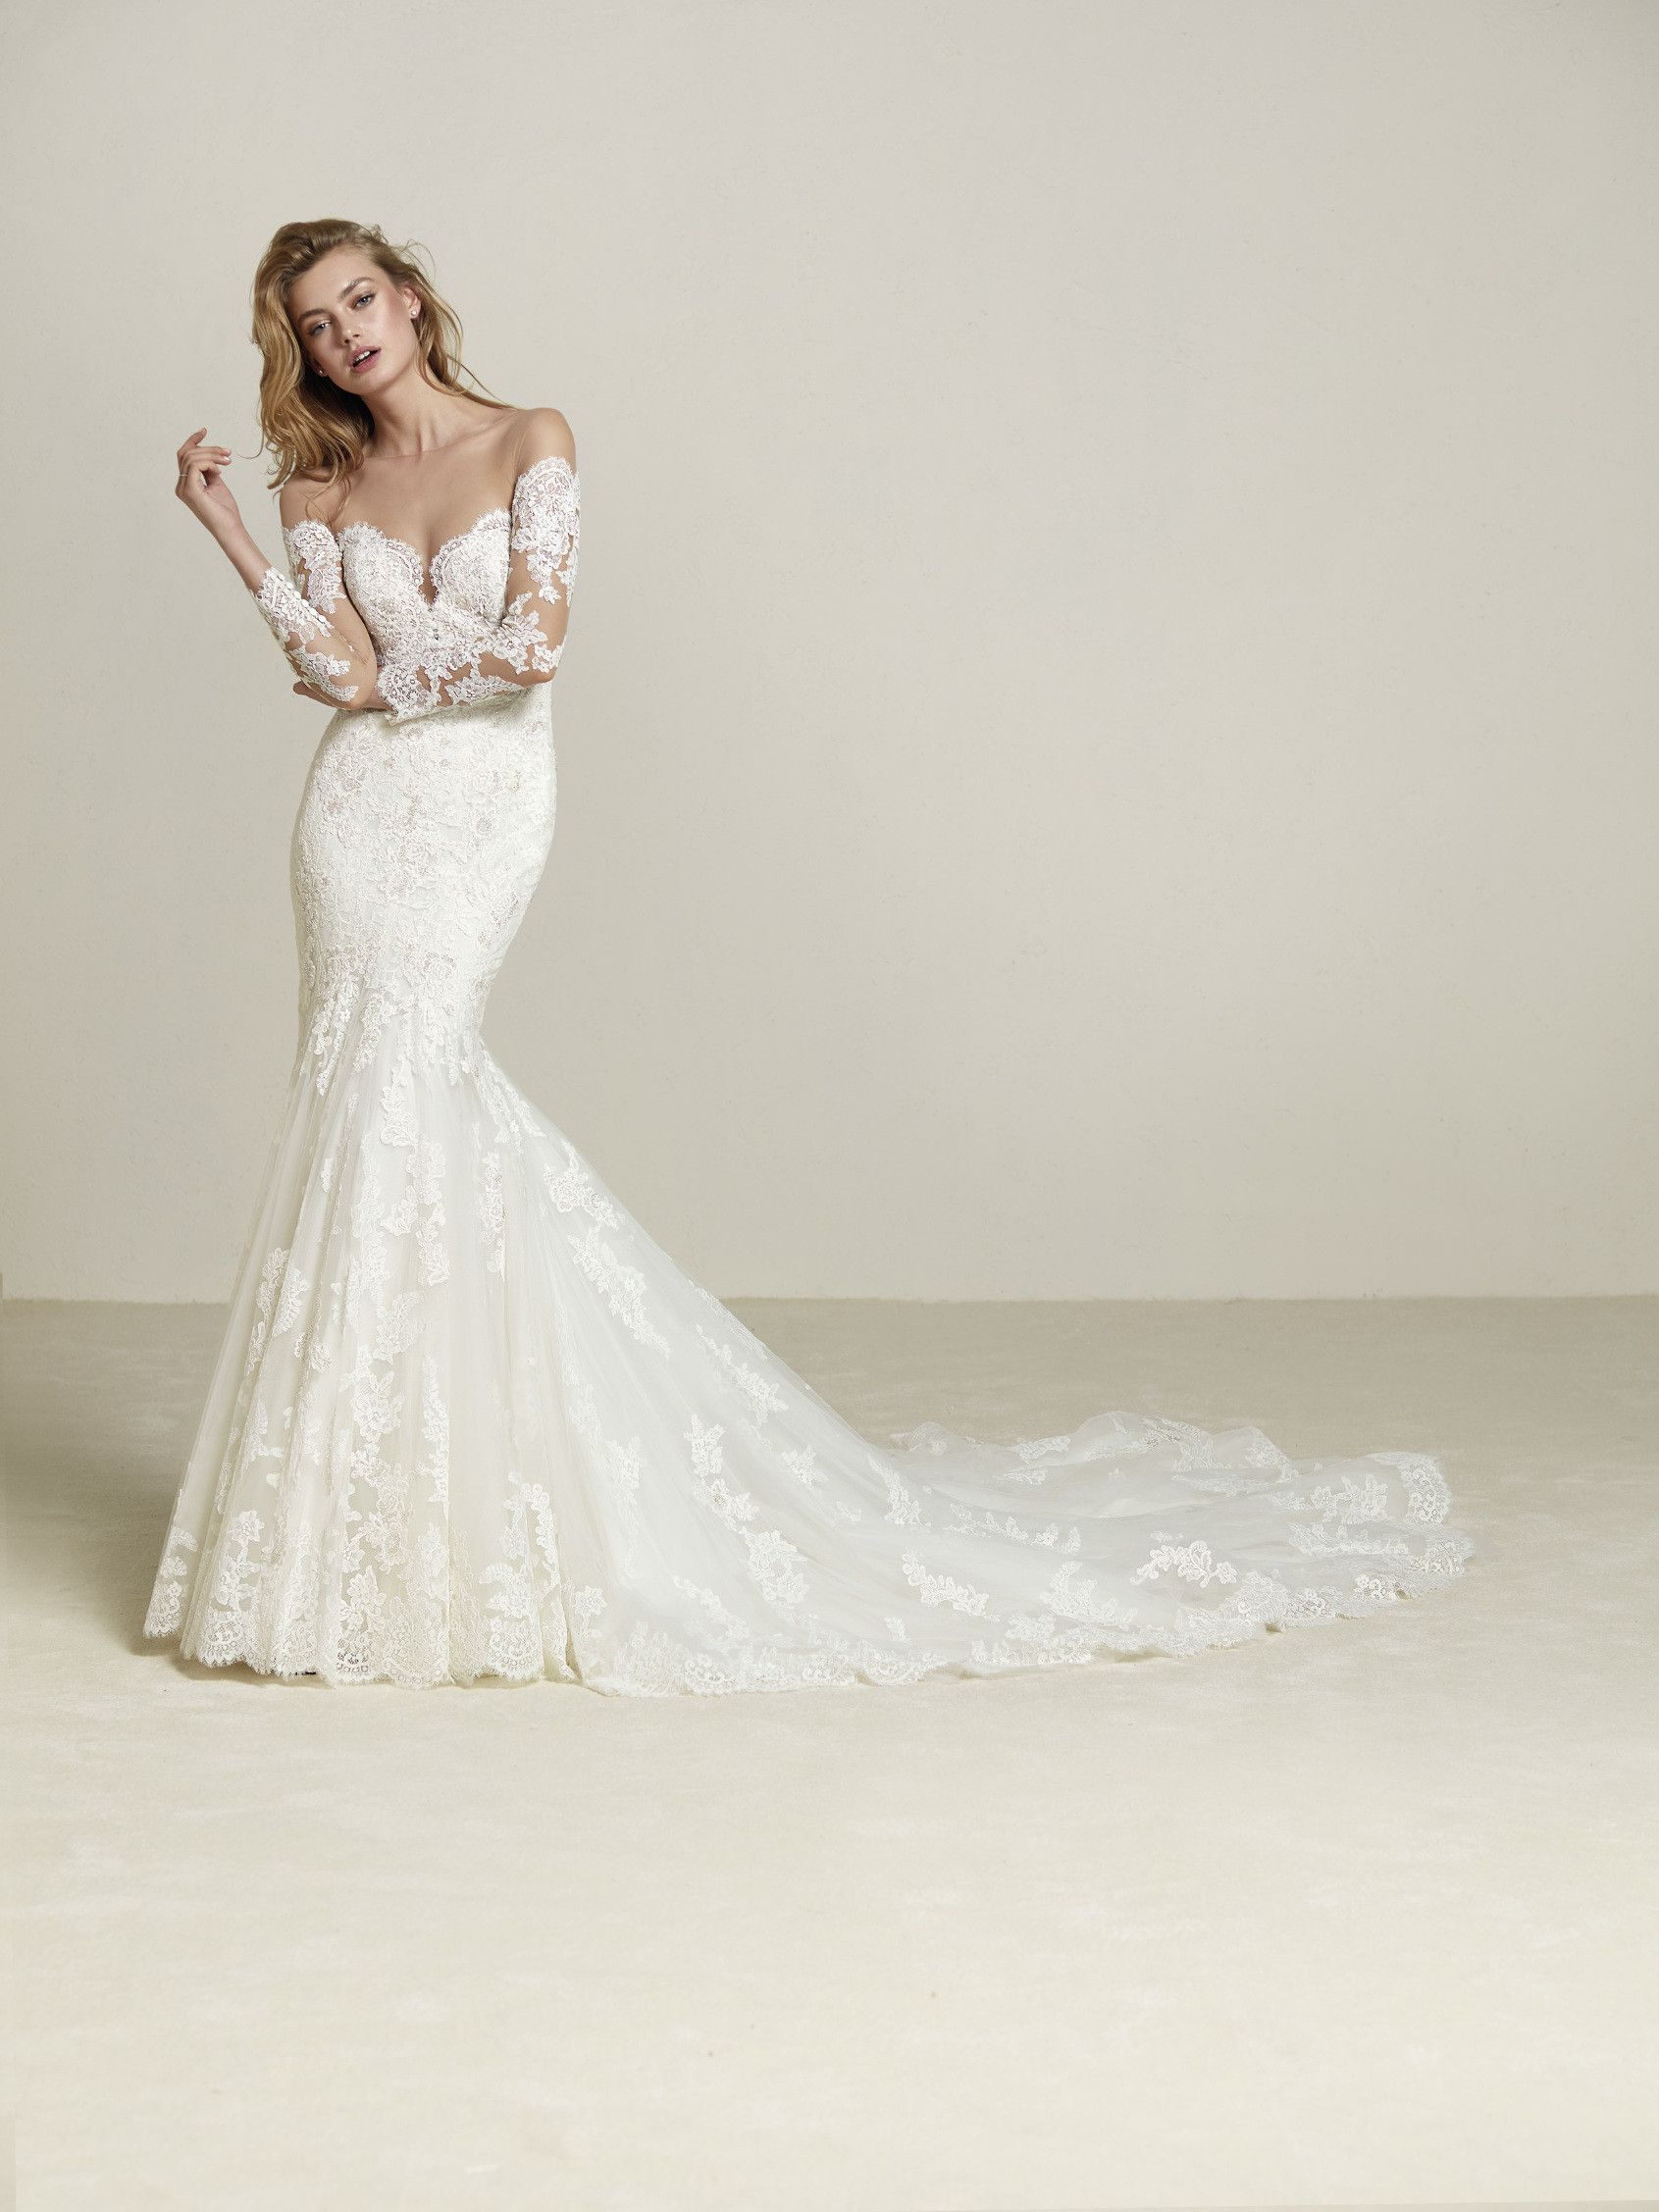 Drilia be seduced by this wedding dress with offtheshoulder